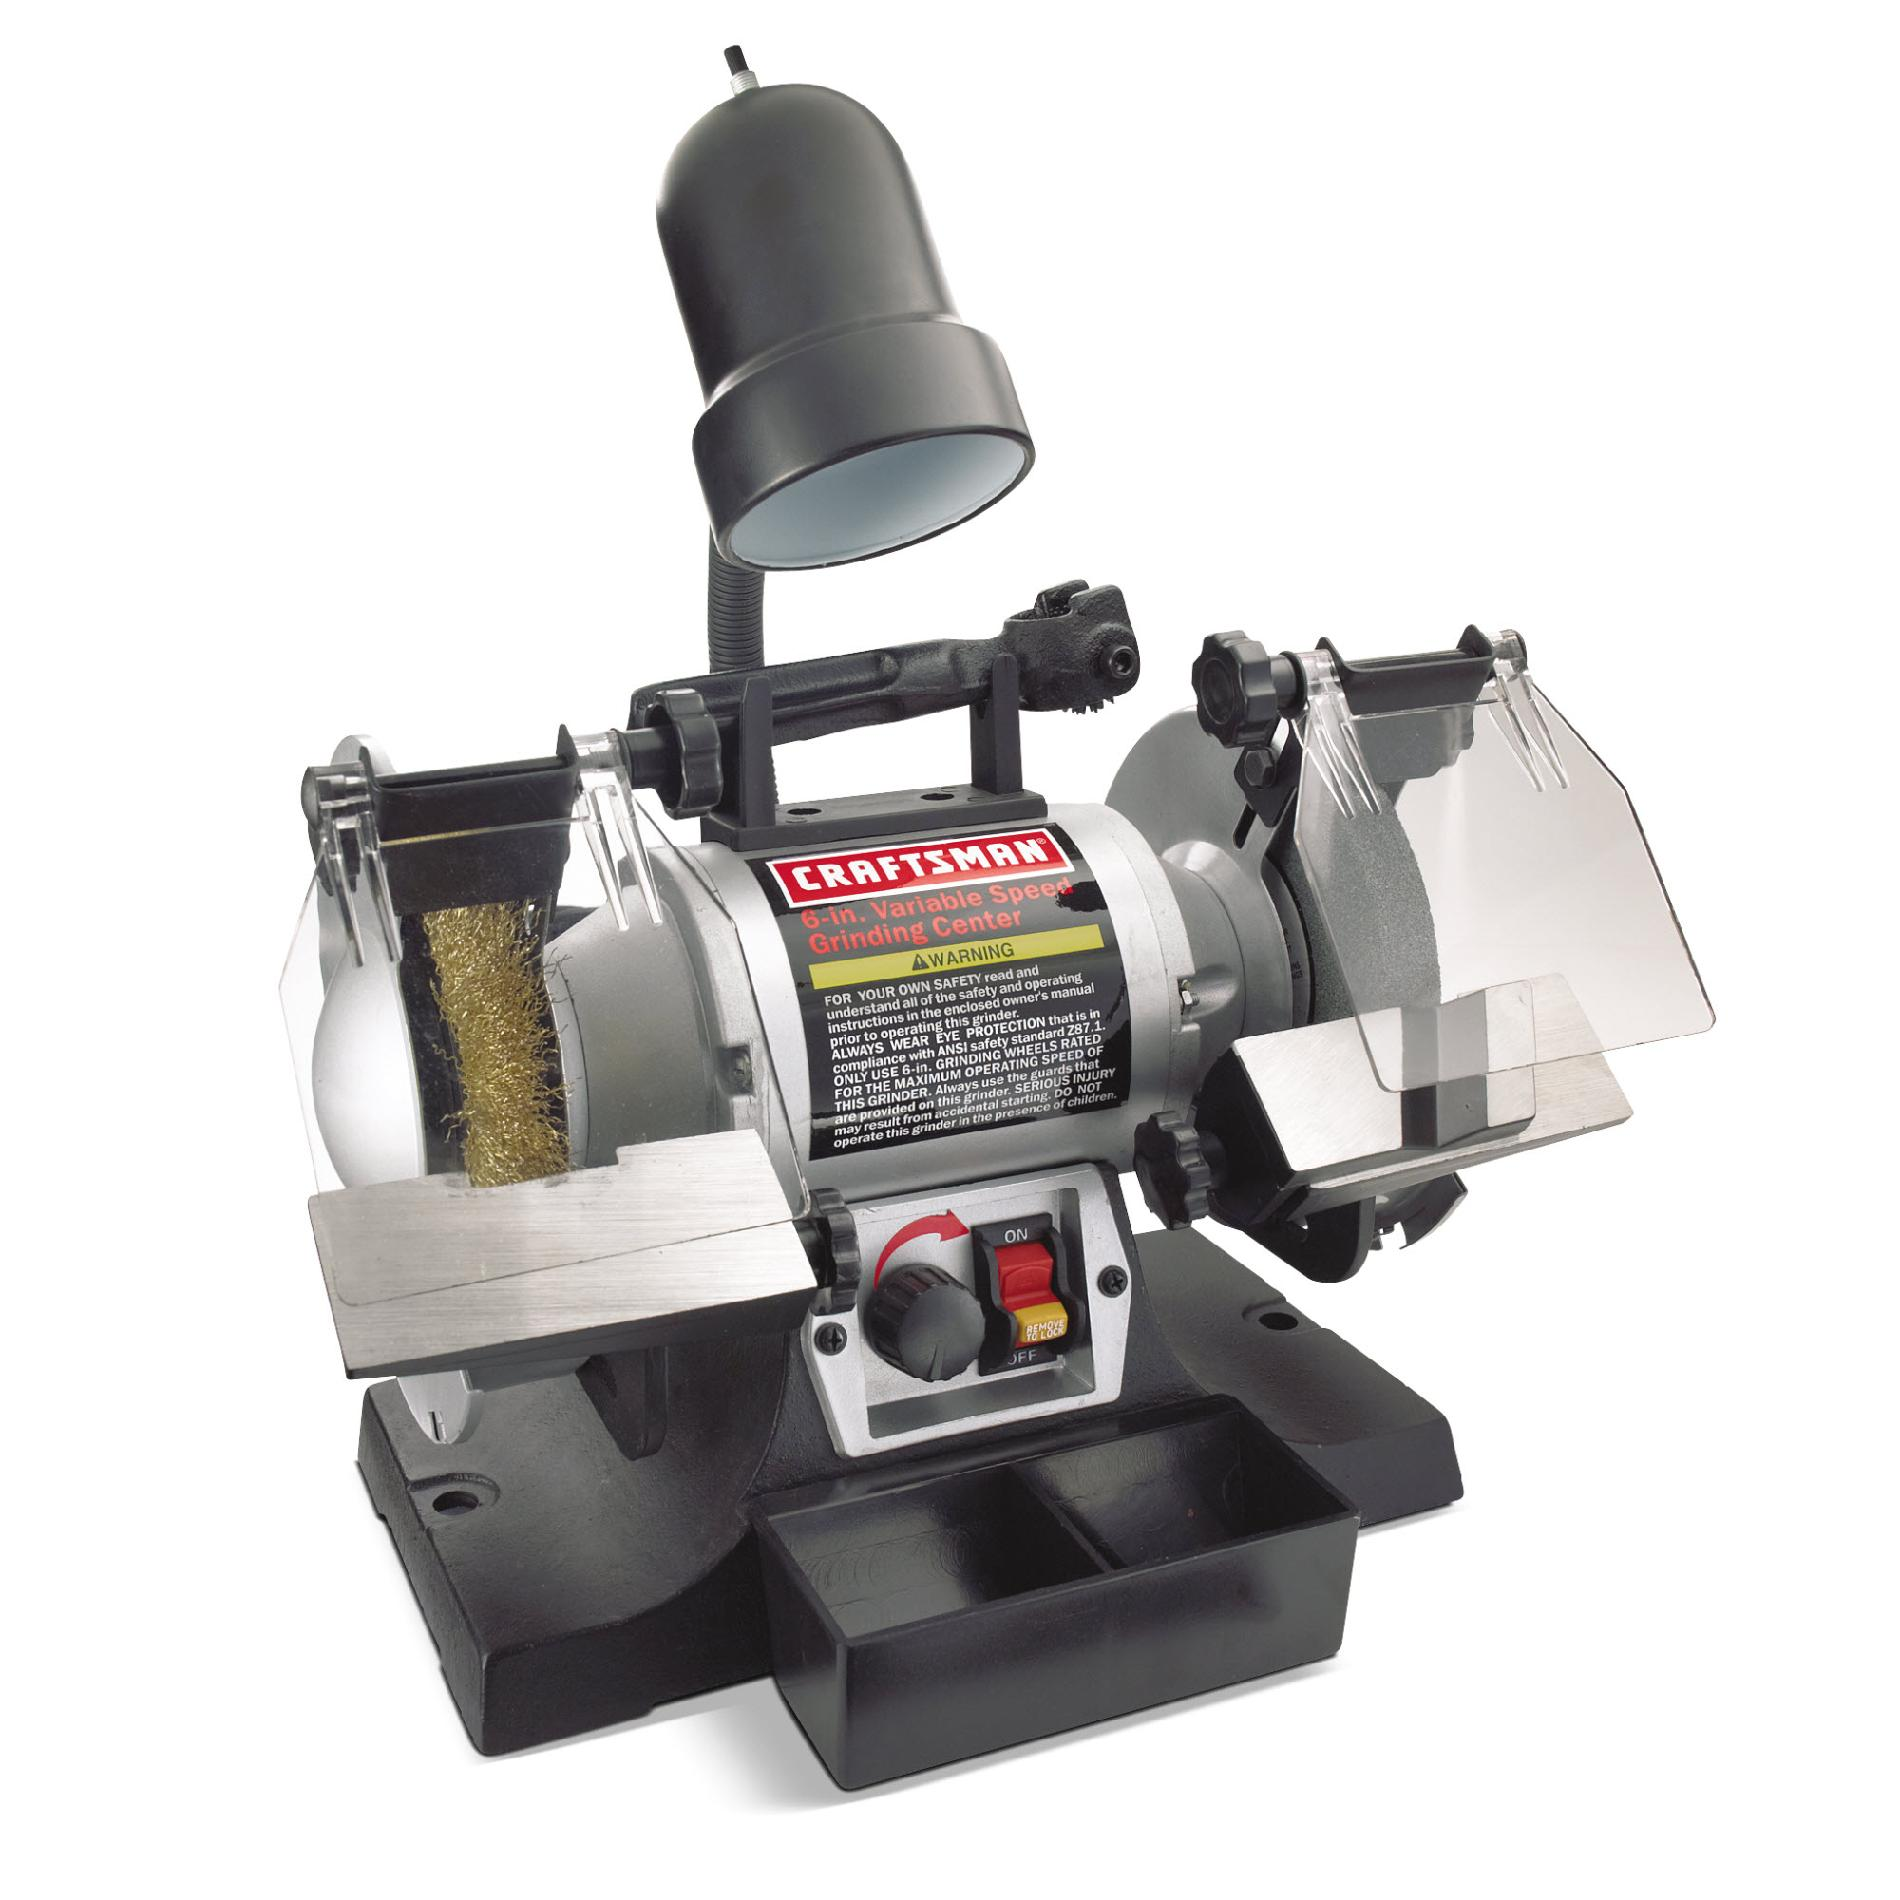 medium resolution of craftsman 6 variable speed grinding centercolumbia bench grinder wiring diagram 6